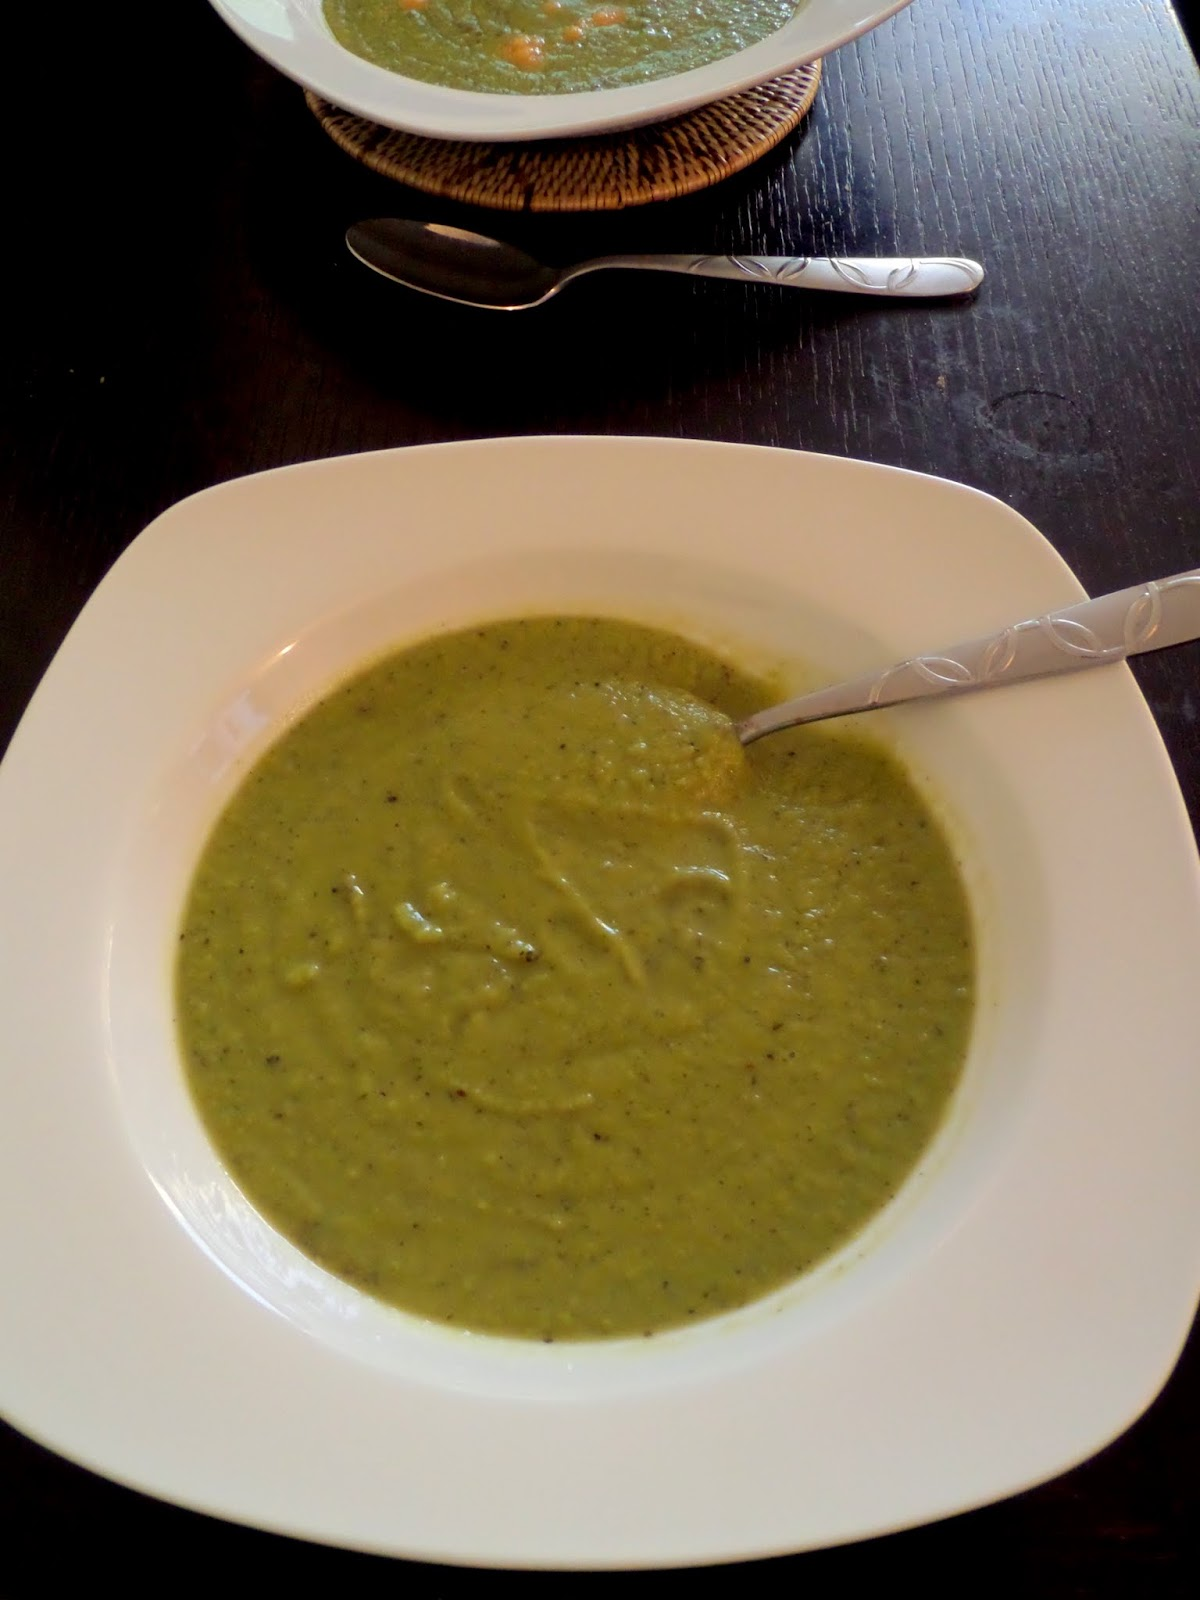 Green Pea Soup:  Healthy and easy, frozen, green peas pureed in a flavorful broth for a creamy and delicious, vibrant green, soup.